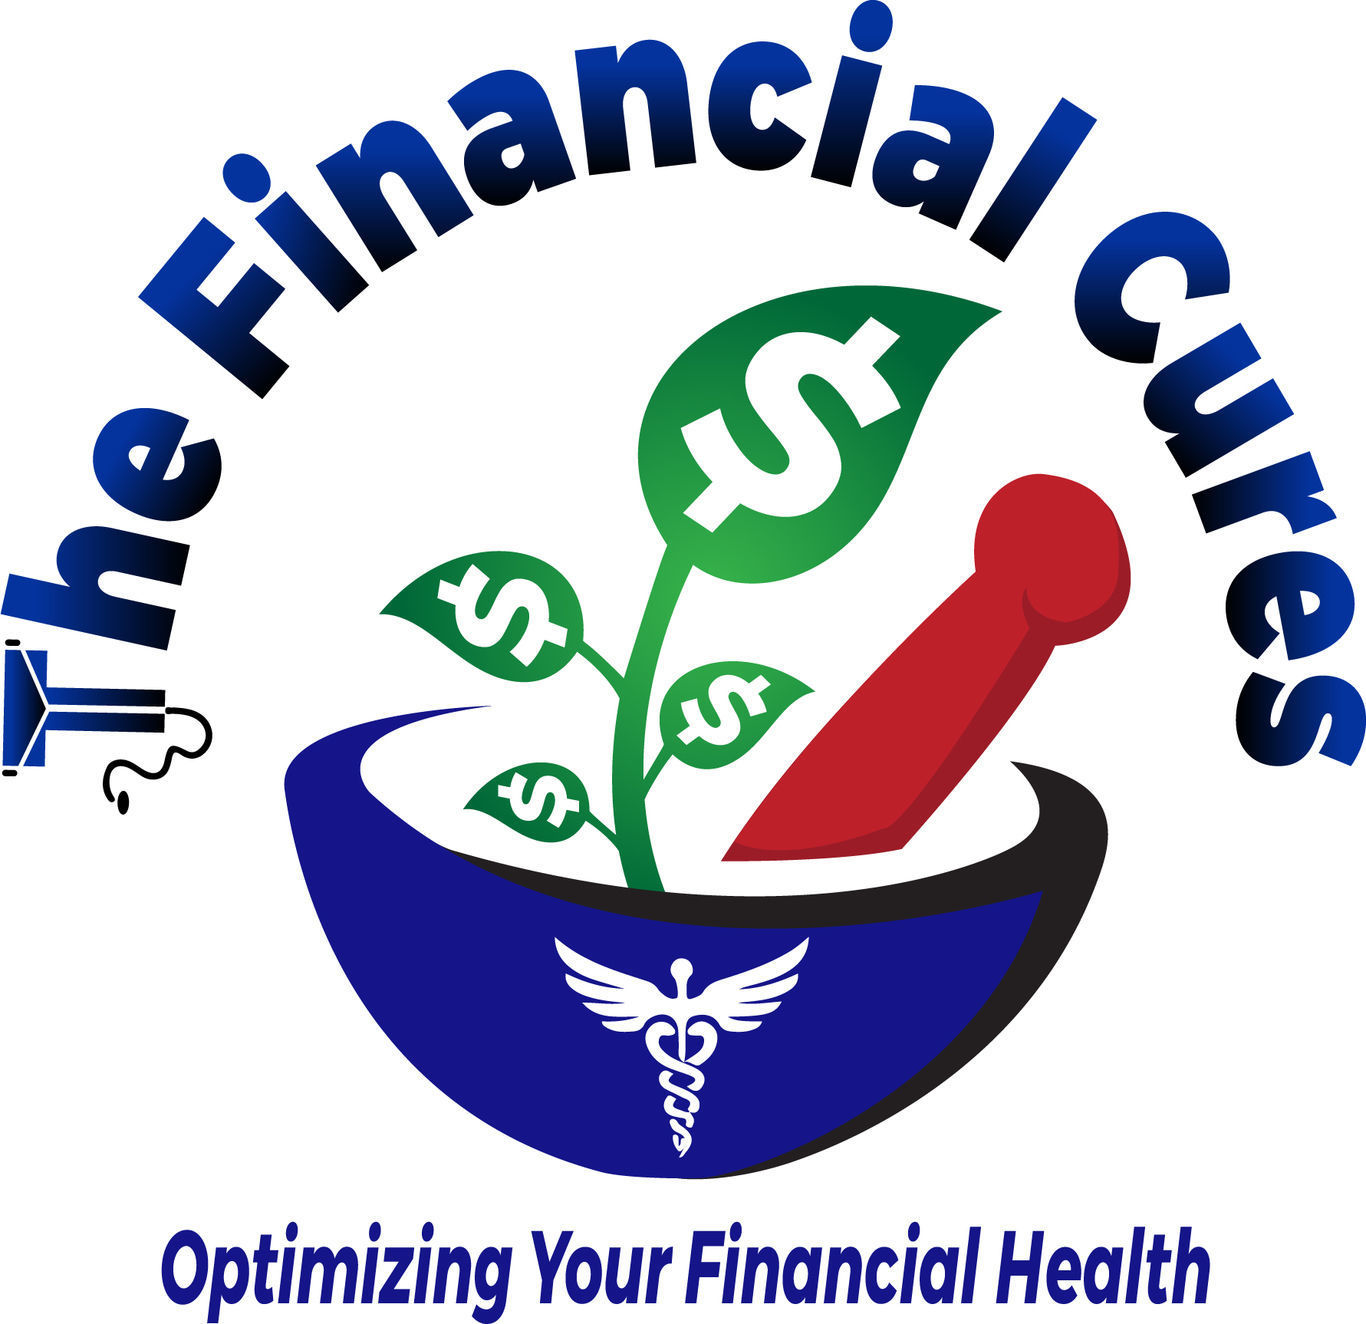 The Financial Cures